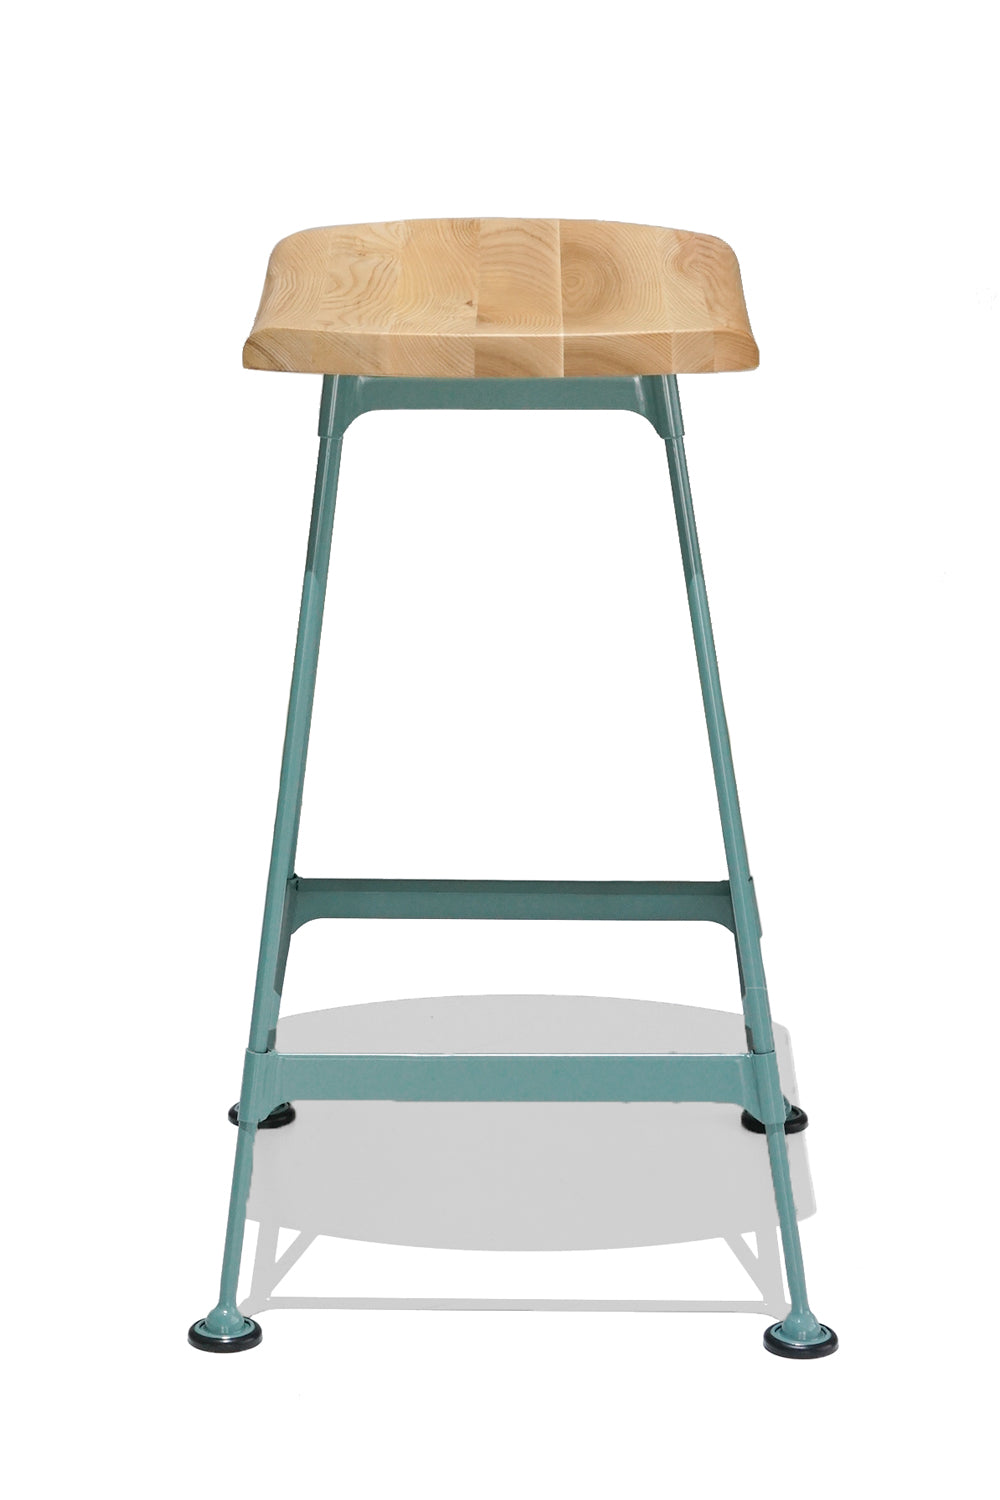 HUBERT bar stool